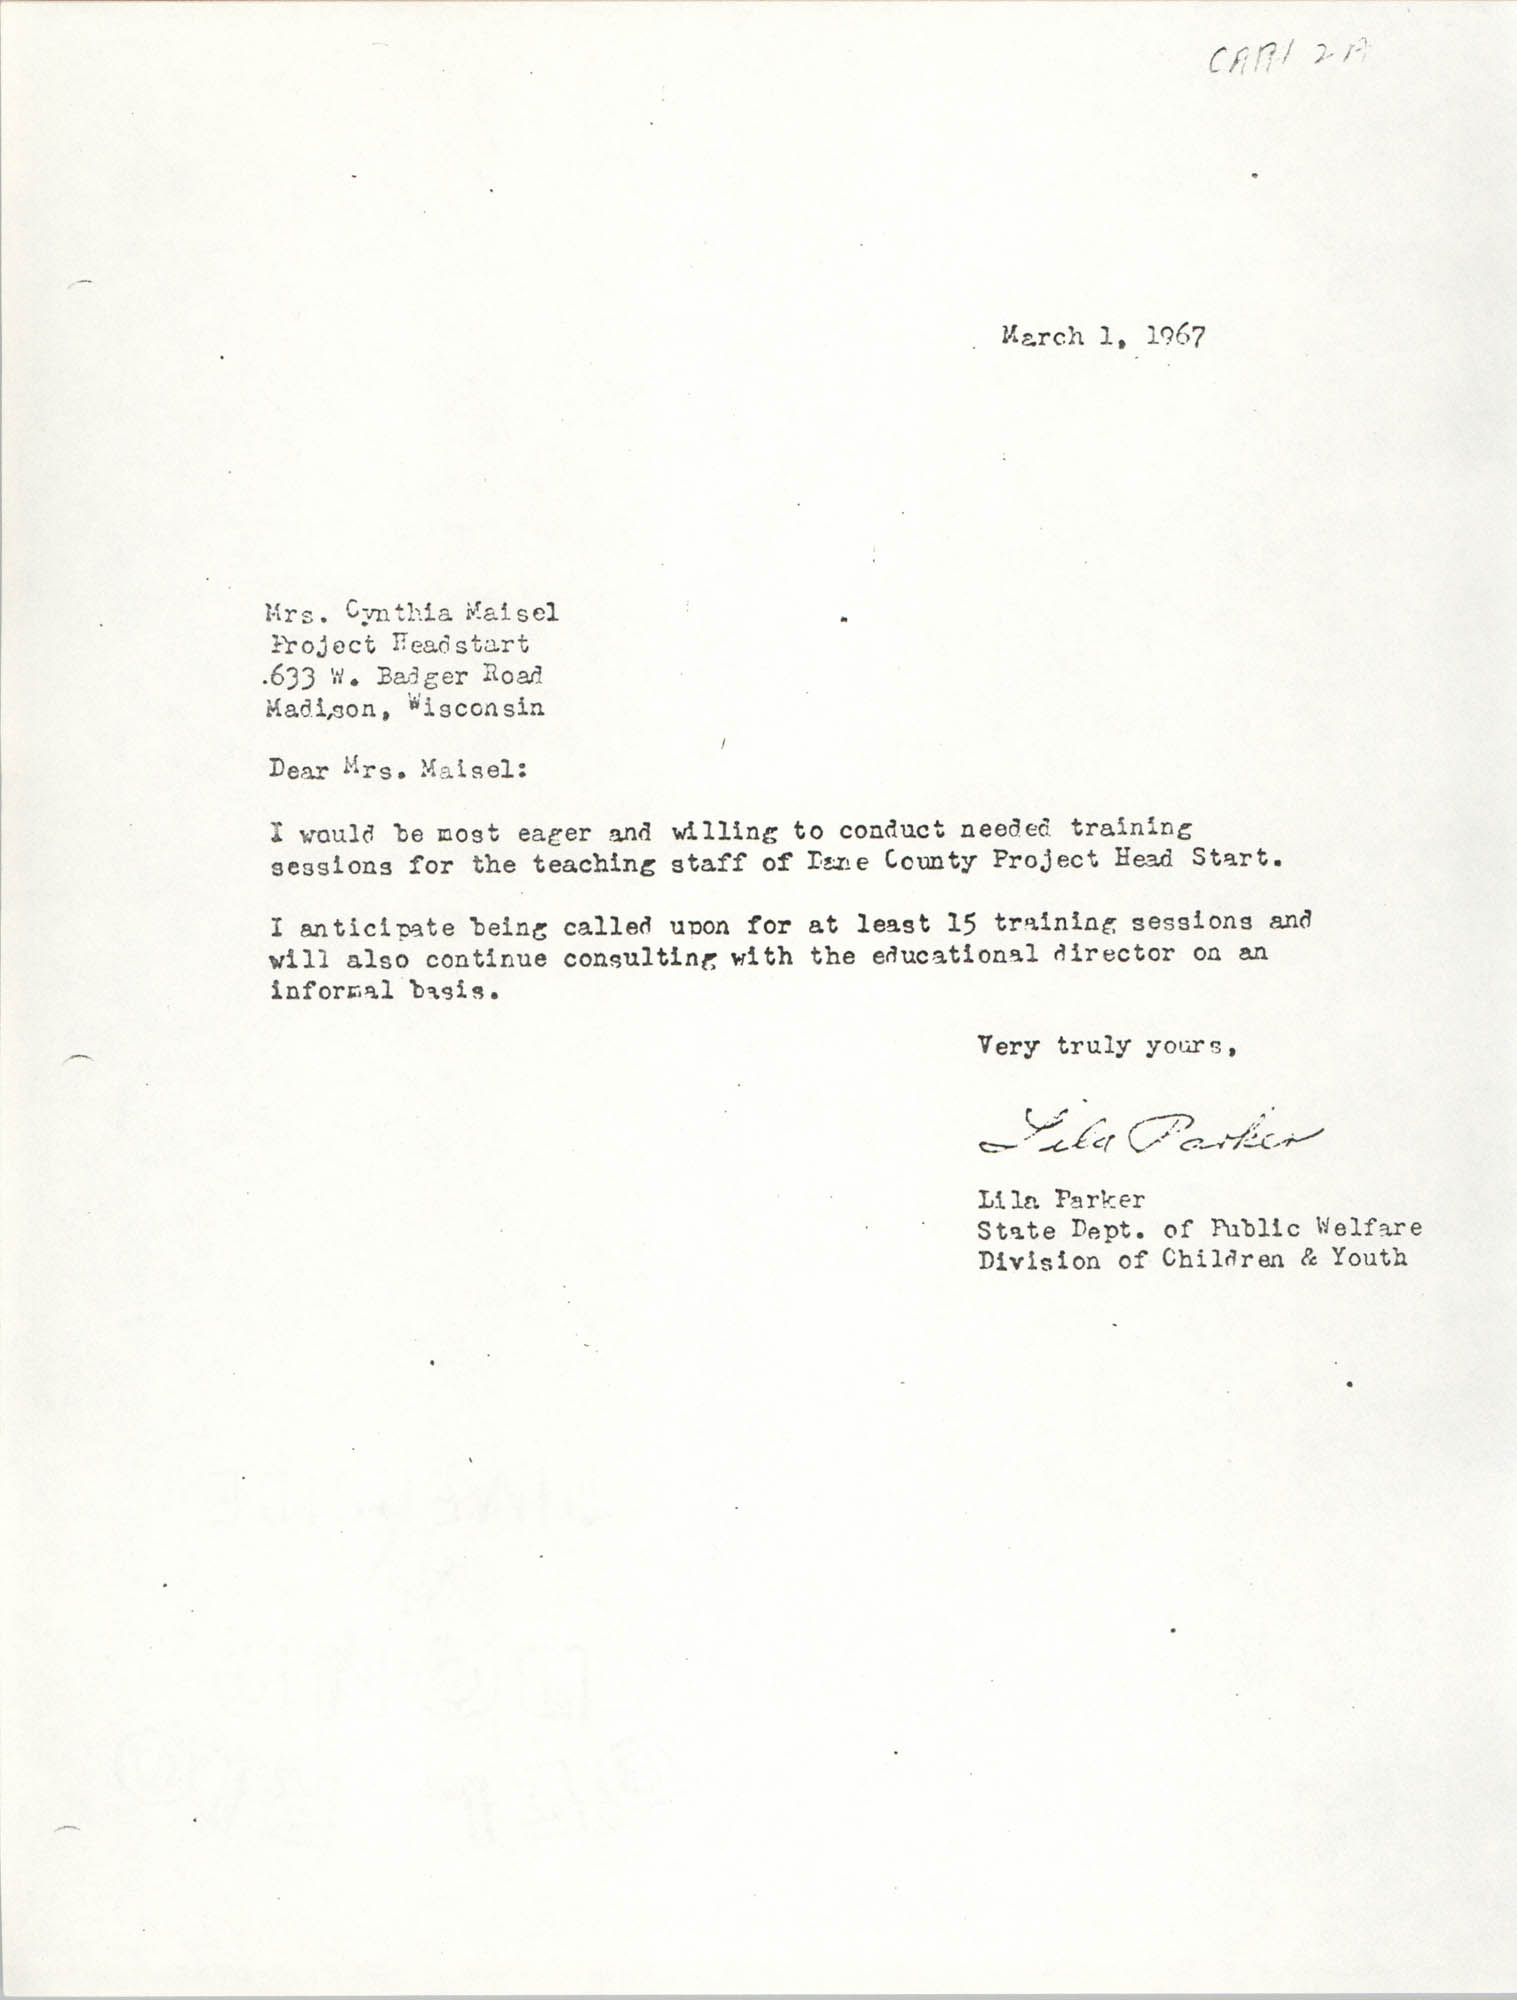 Letter from Lila Parker to Cynthia Maisel, March 1, 1967